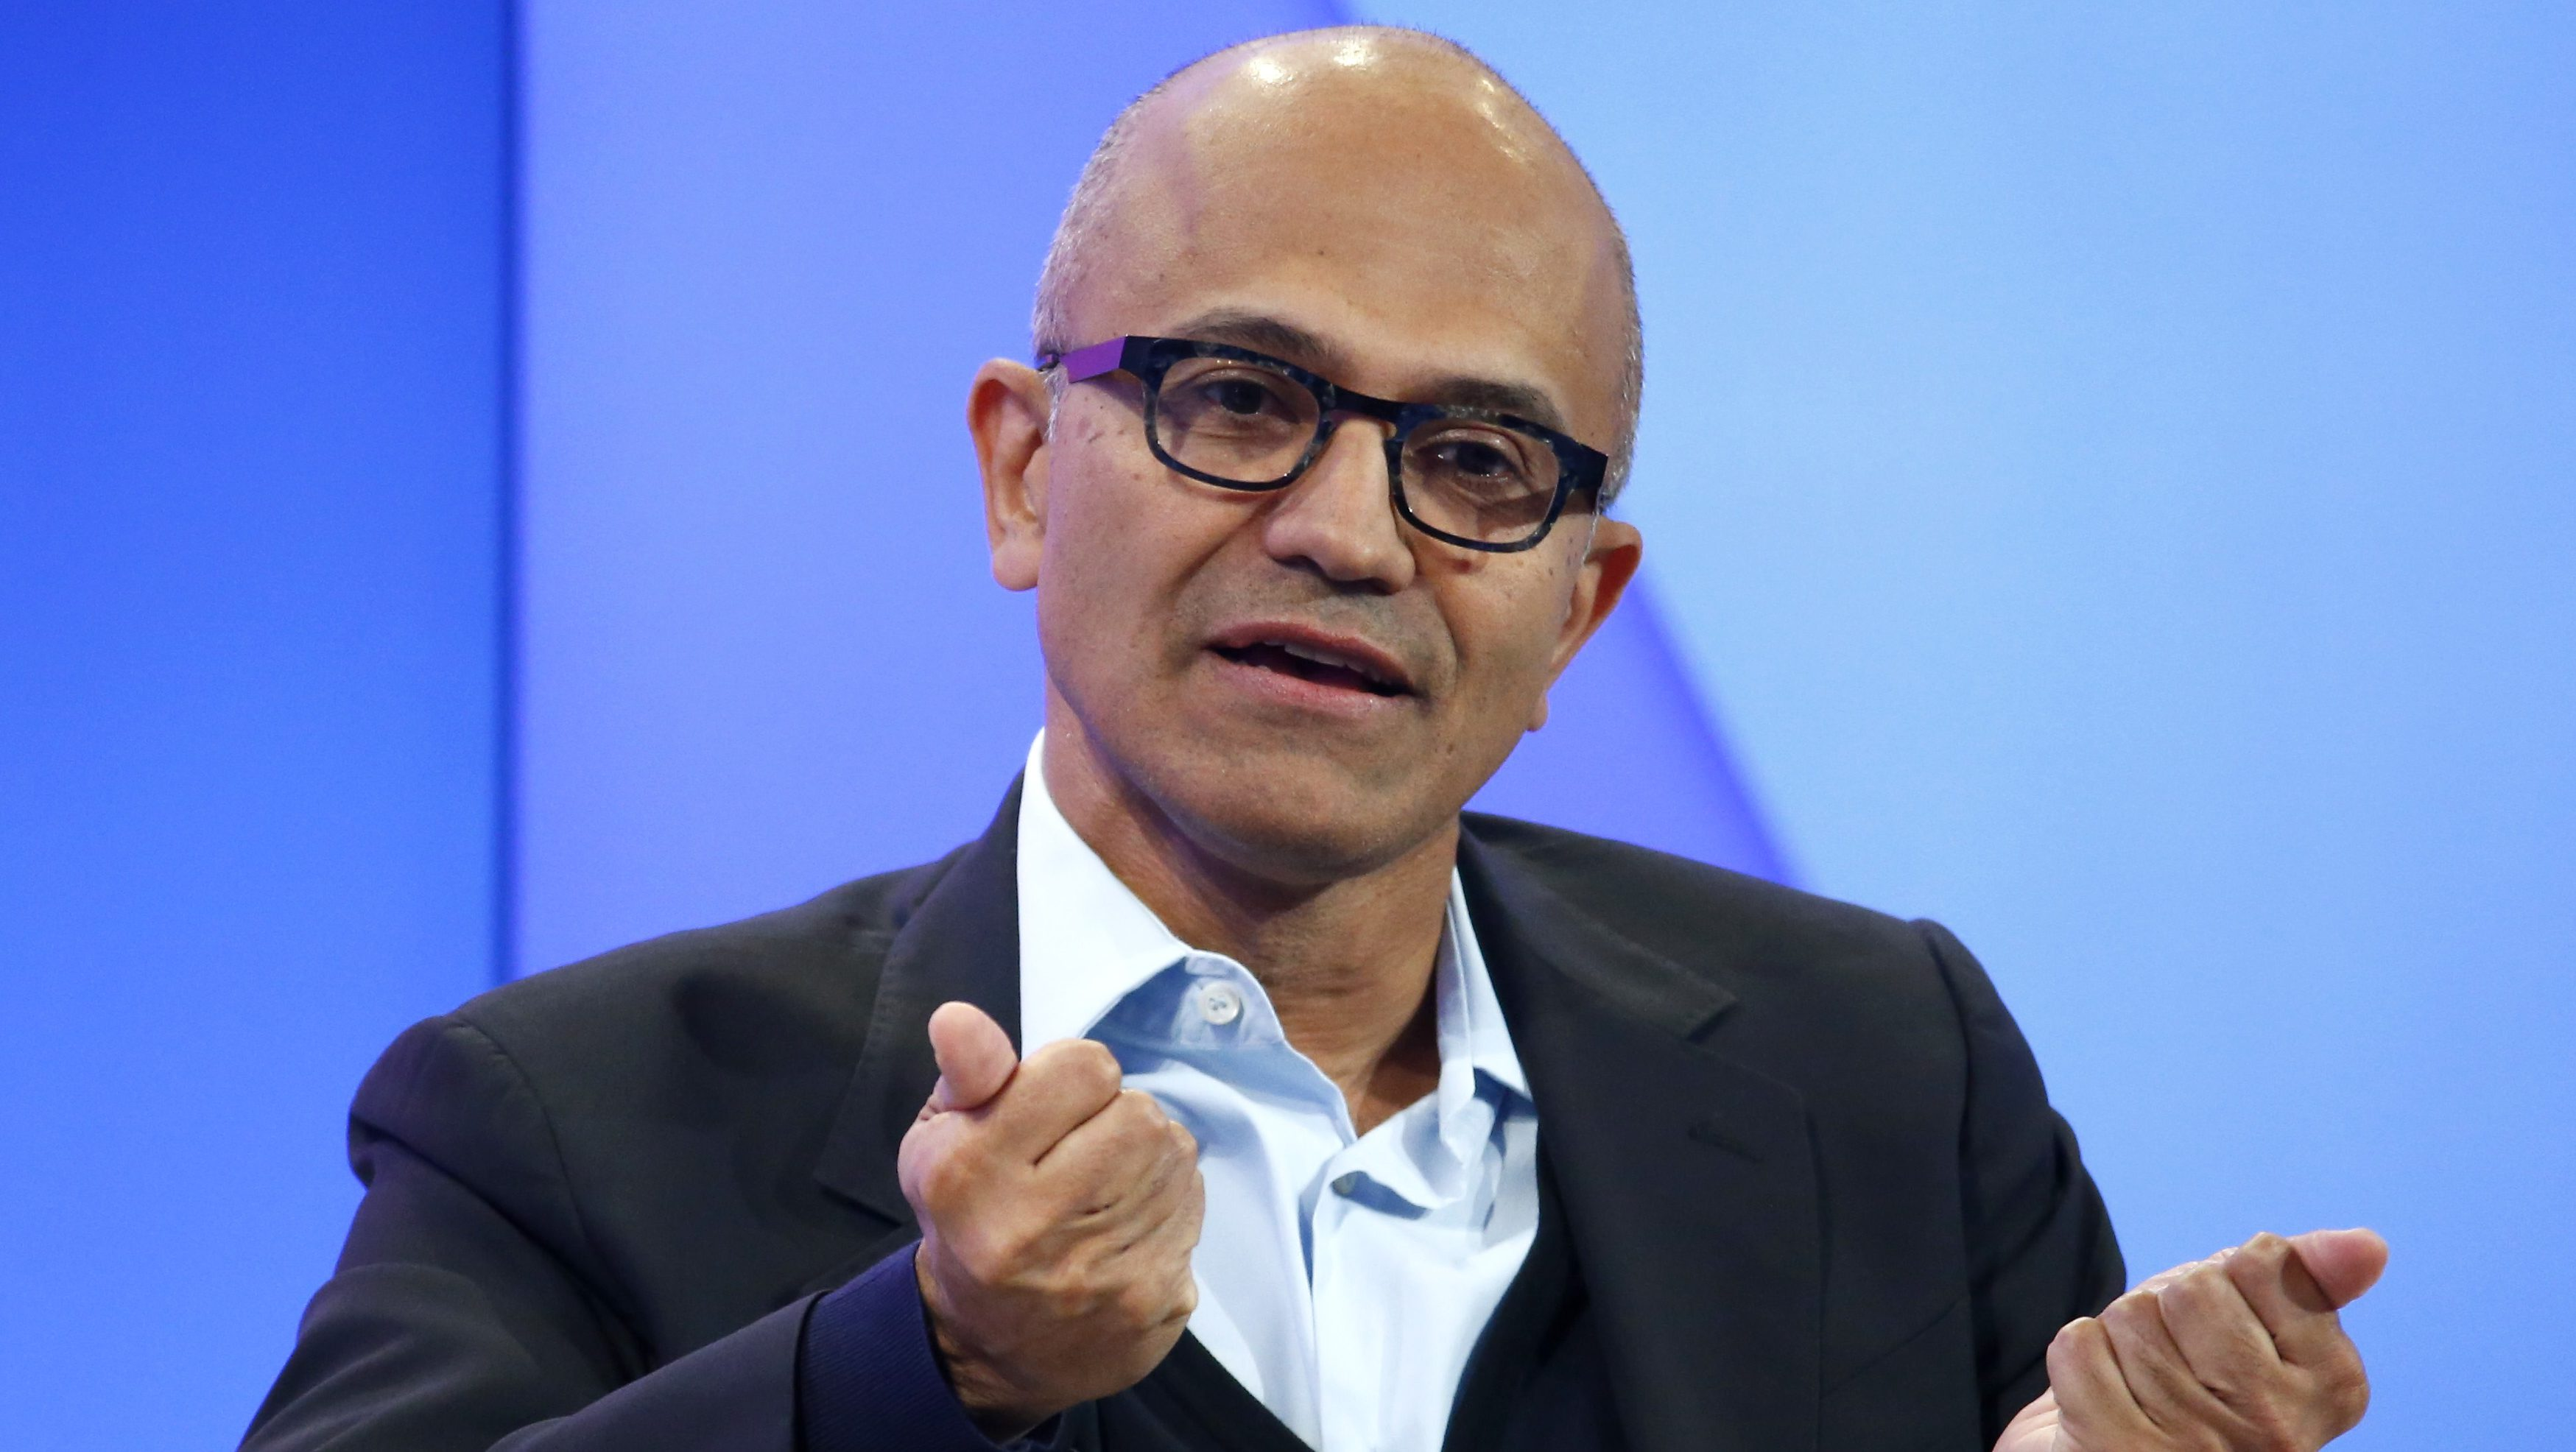 Satya Nadella, CEO of Microsoft Corporation attends the annual meeting of the World Economic Forum (WEF) in Davos, Switzerland